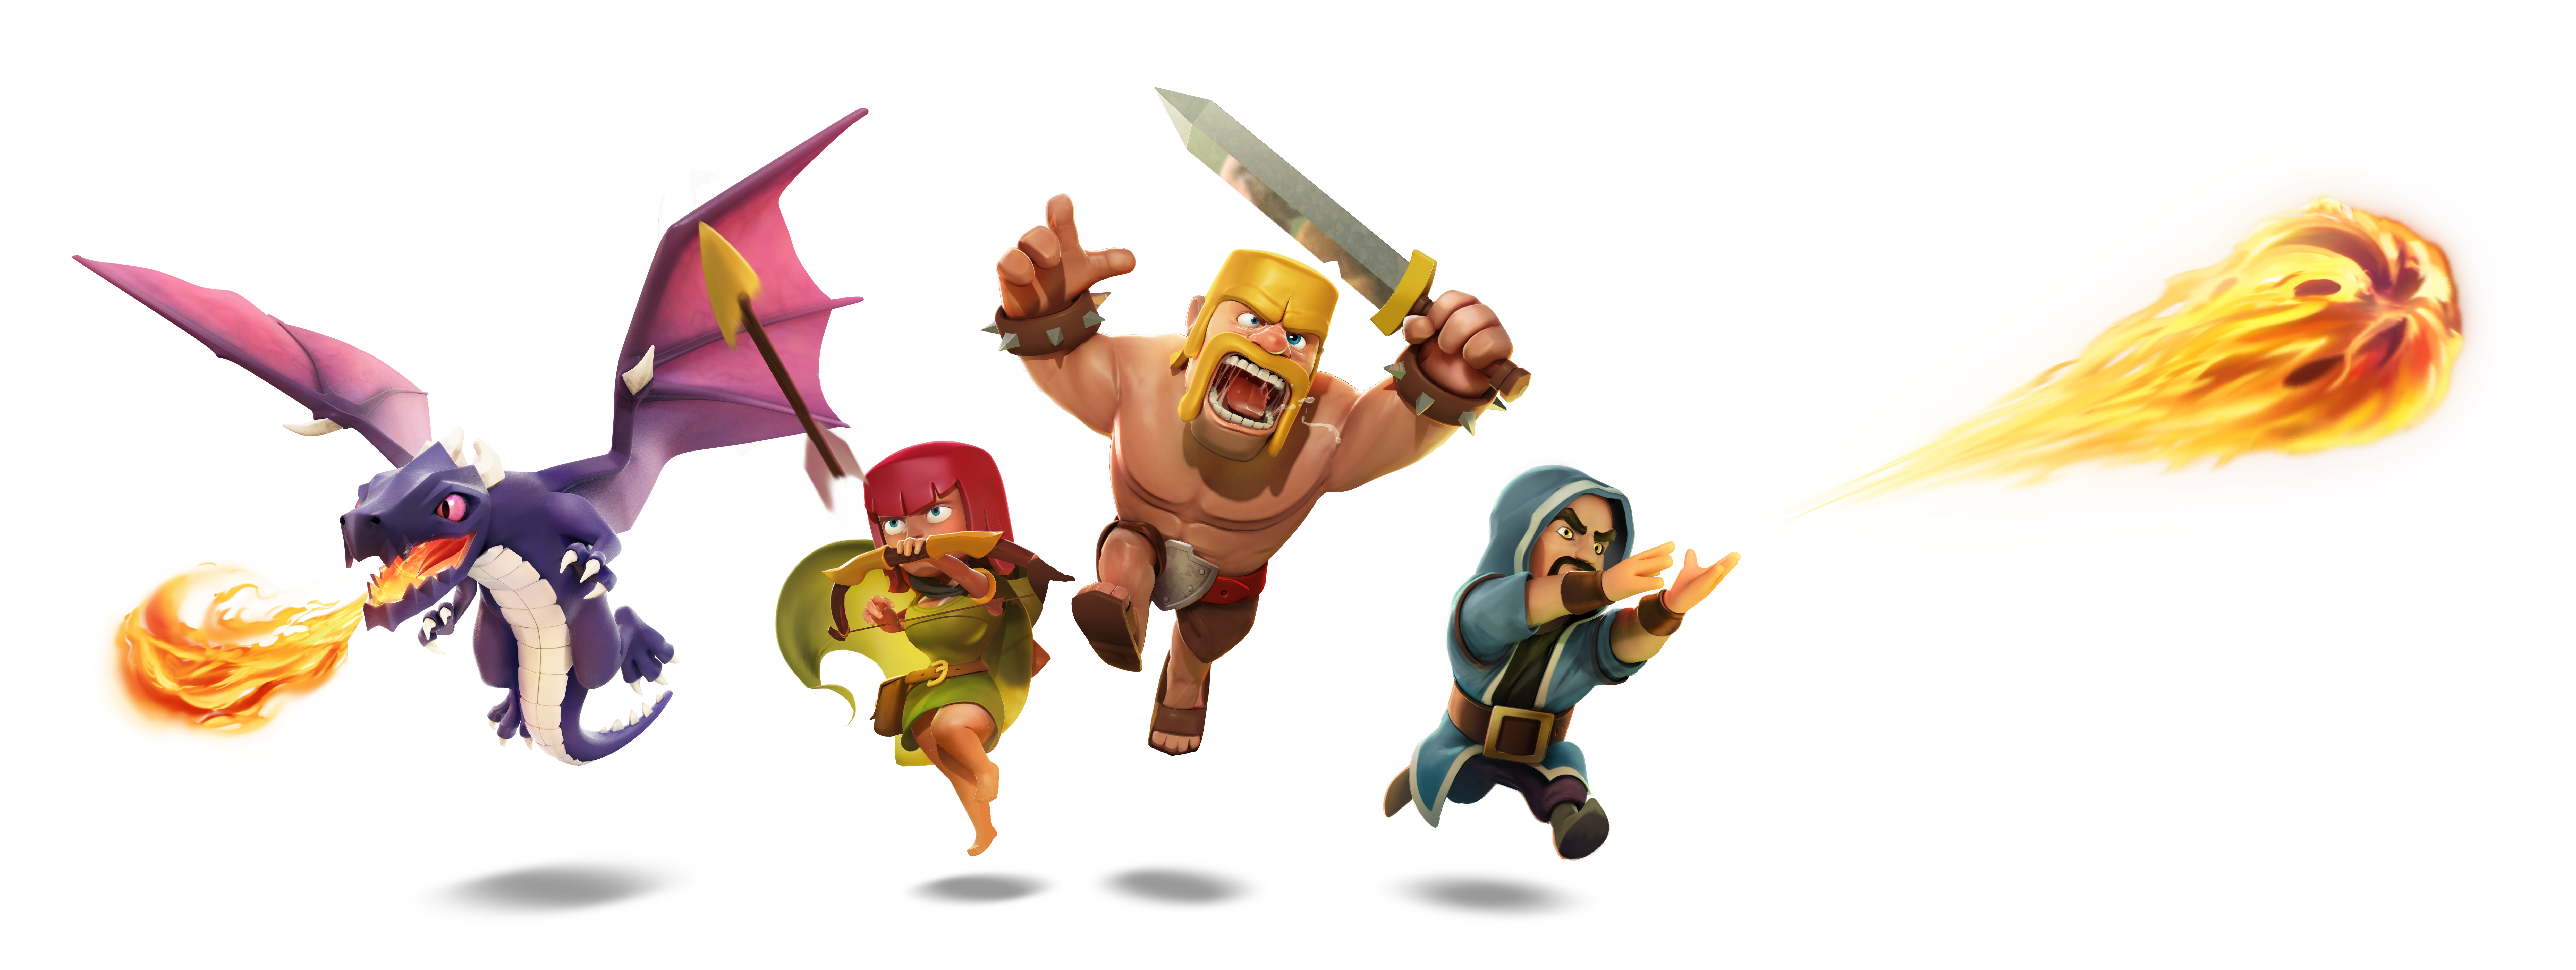 Clash Of Clans HD PNG - 119502